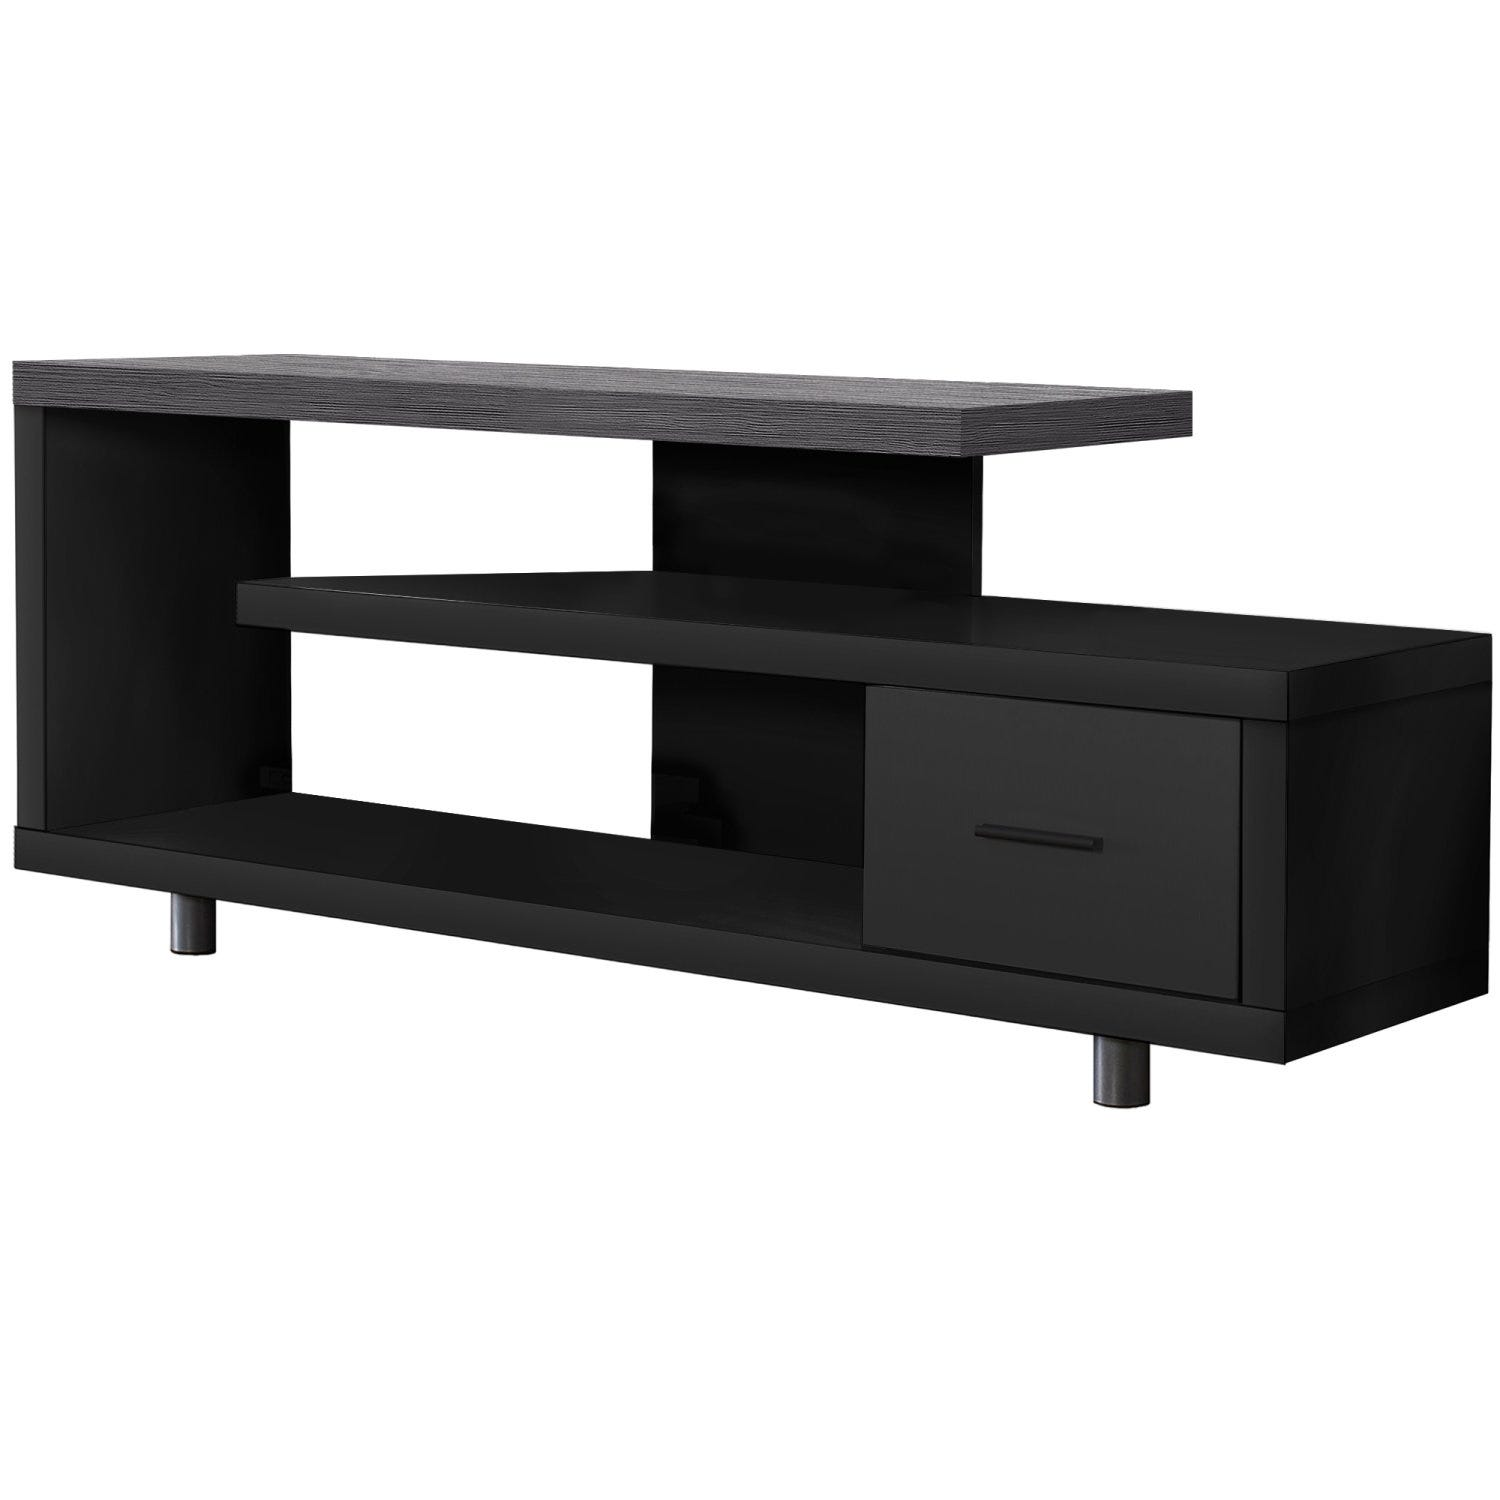 Monarch Tv Stand Rd Furniture